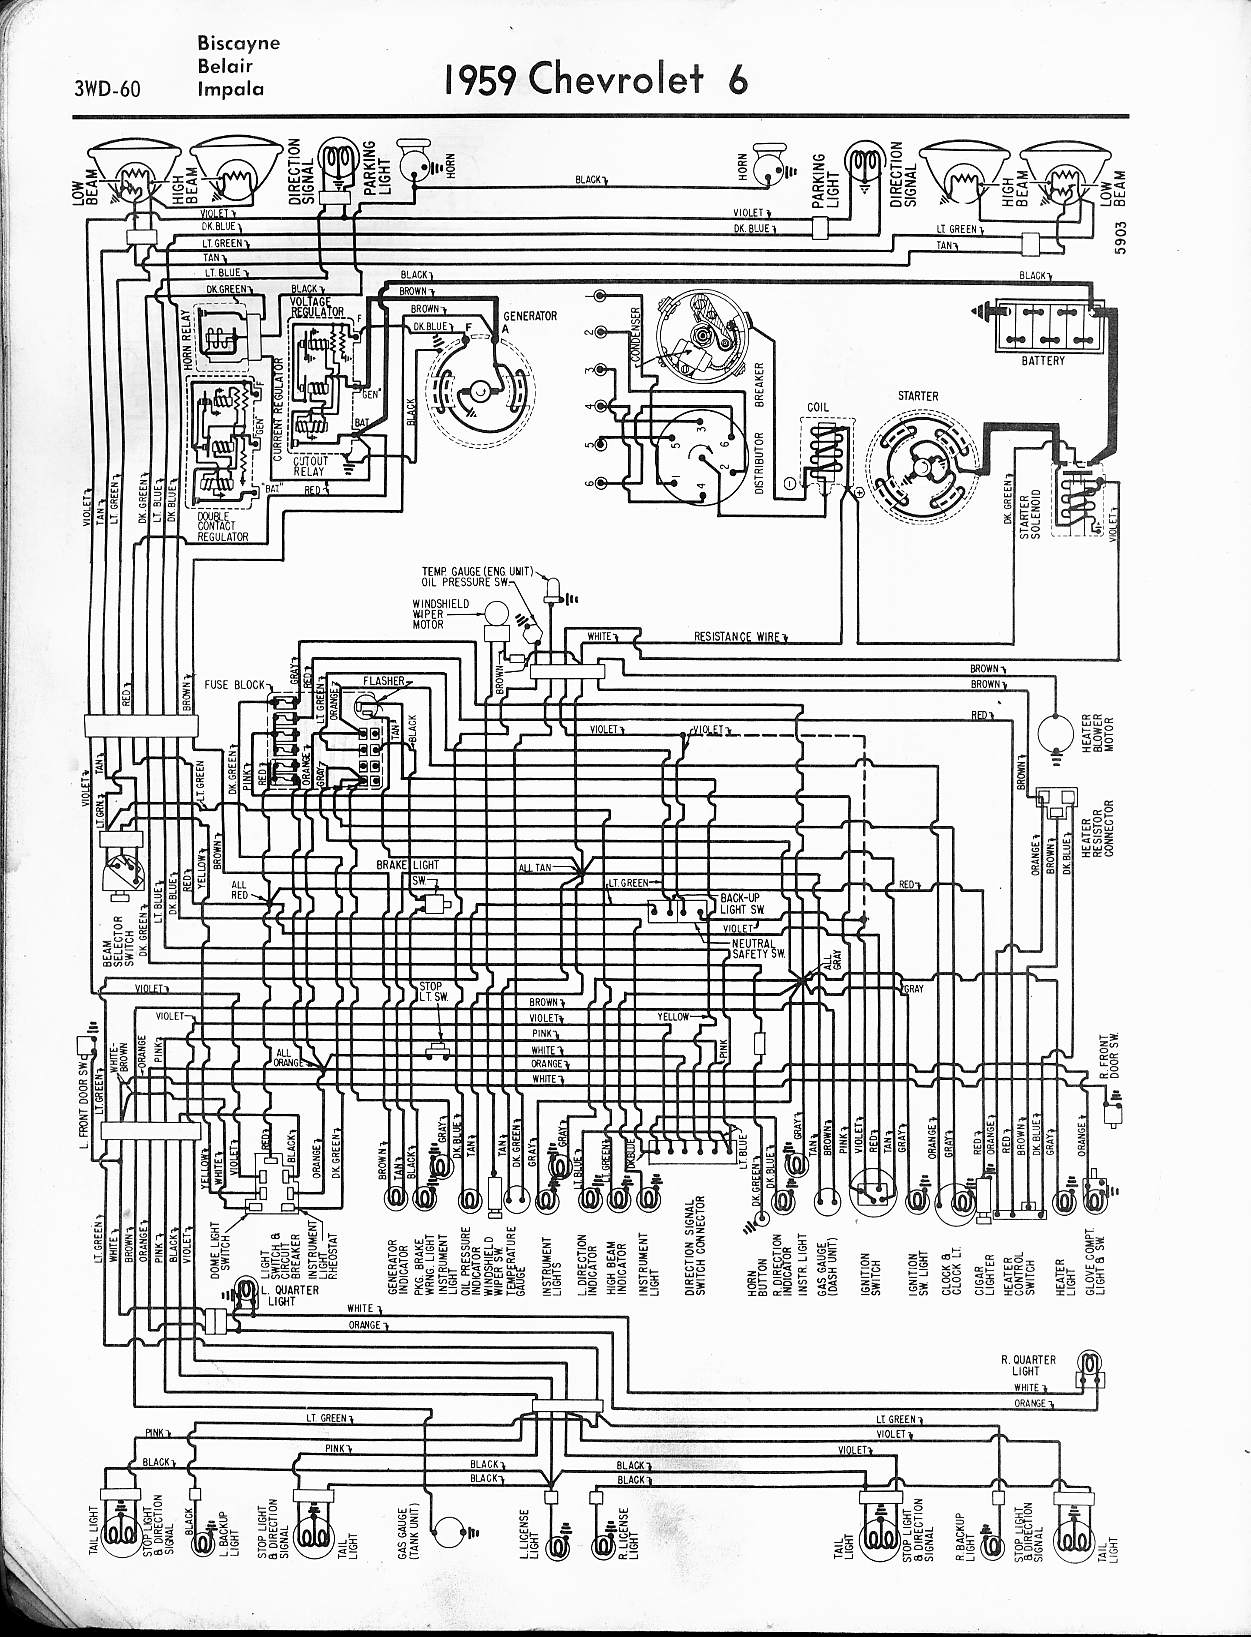 1959 Chevy Impala Wiring Diagram Reveolution Of 1966 57 65 Diagrams Rh Oldcarmanualproject Com